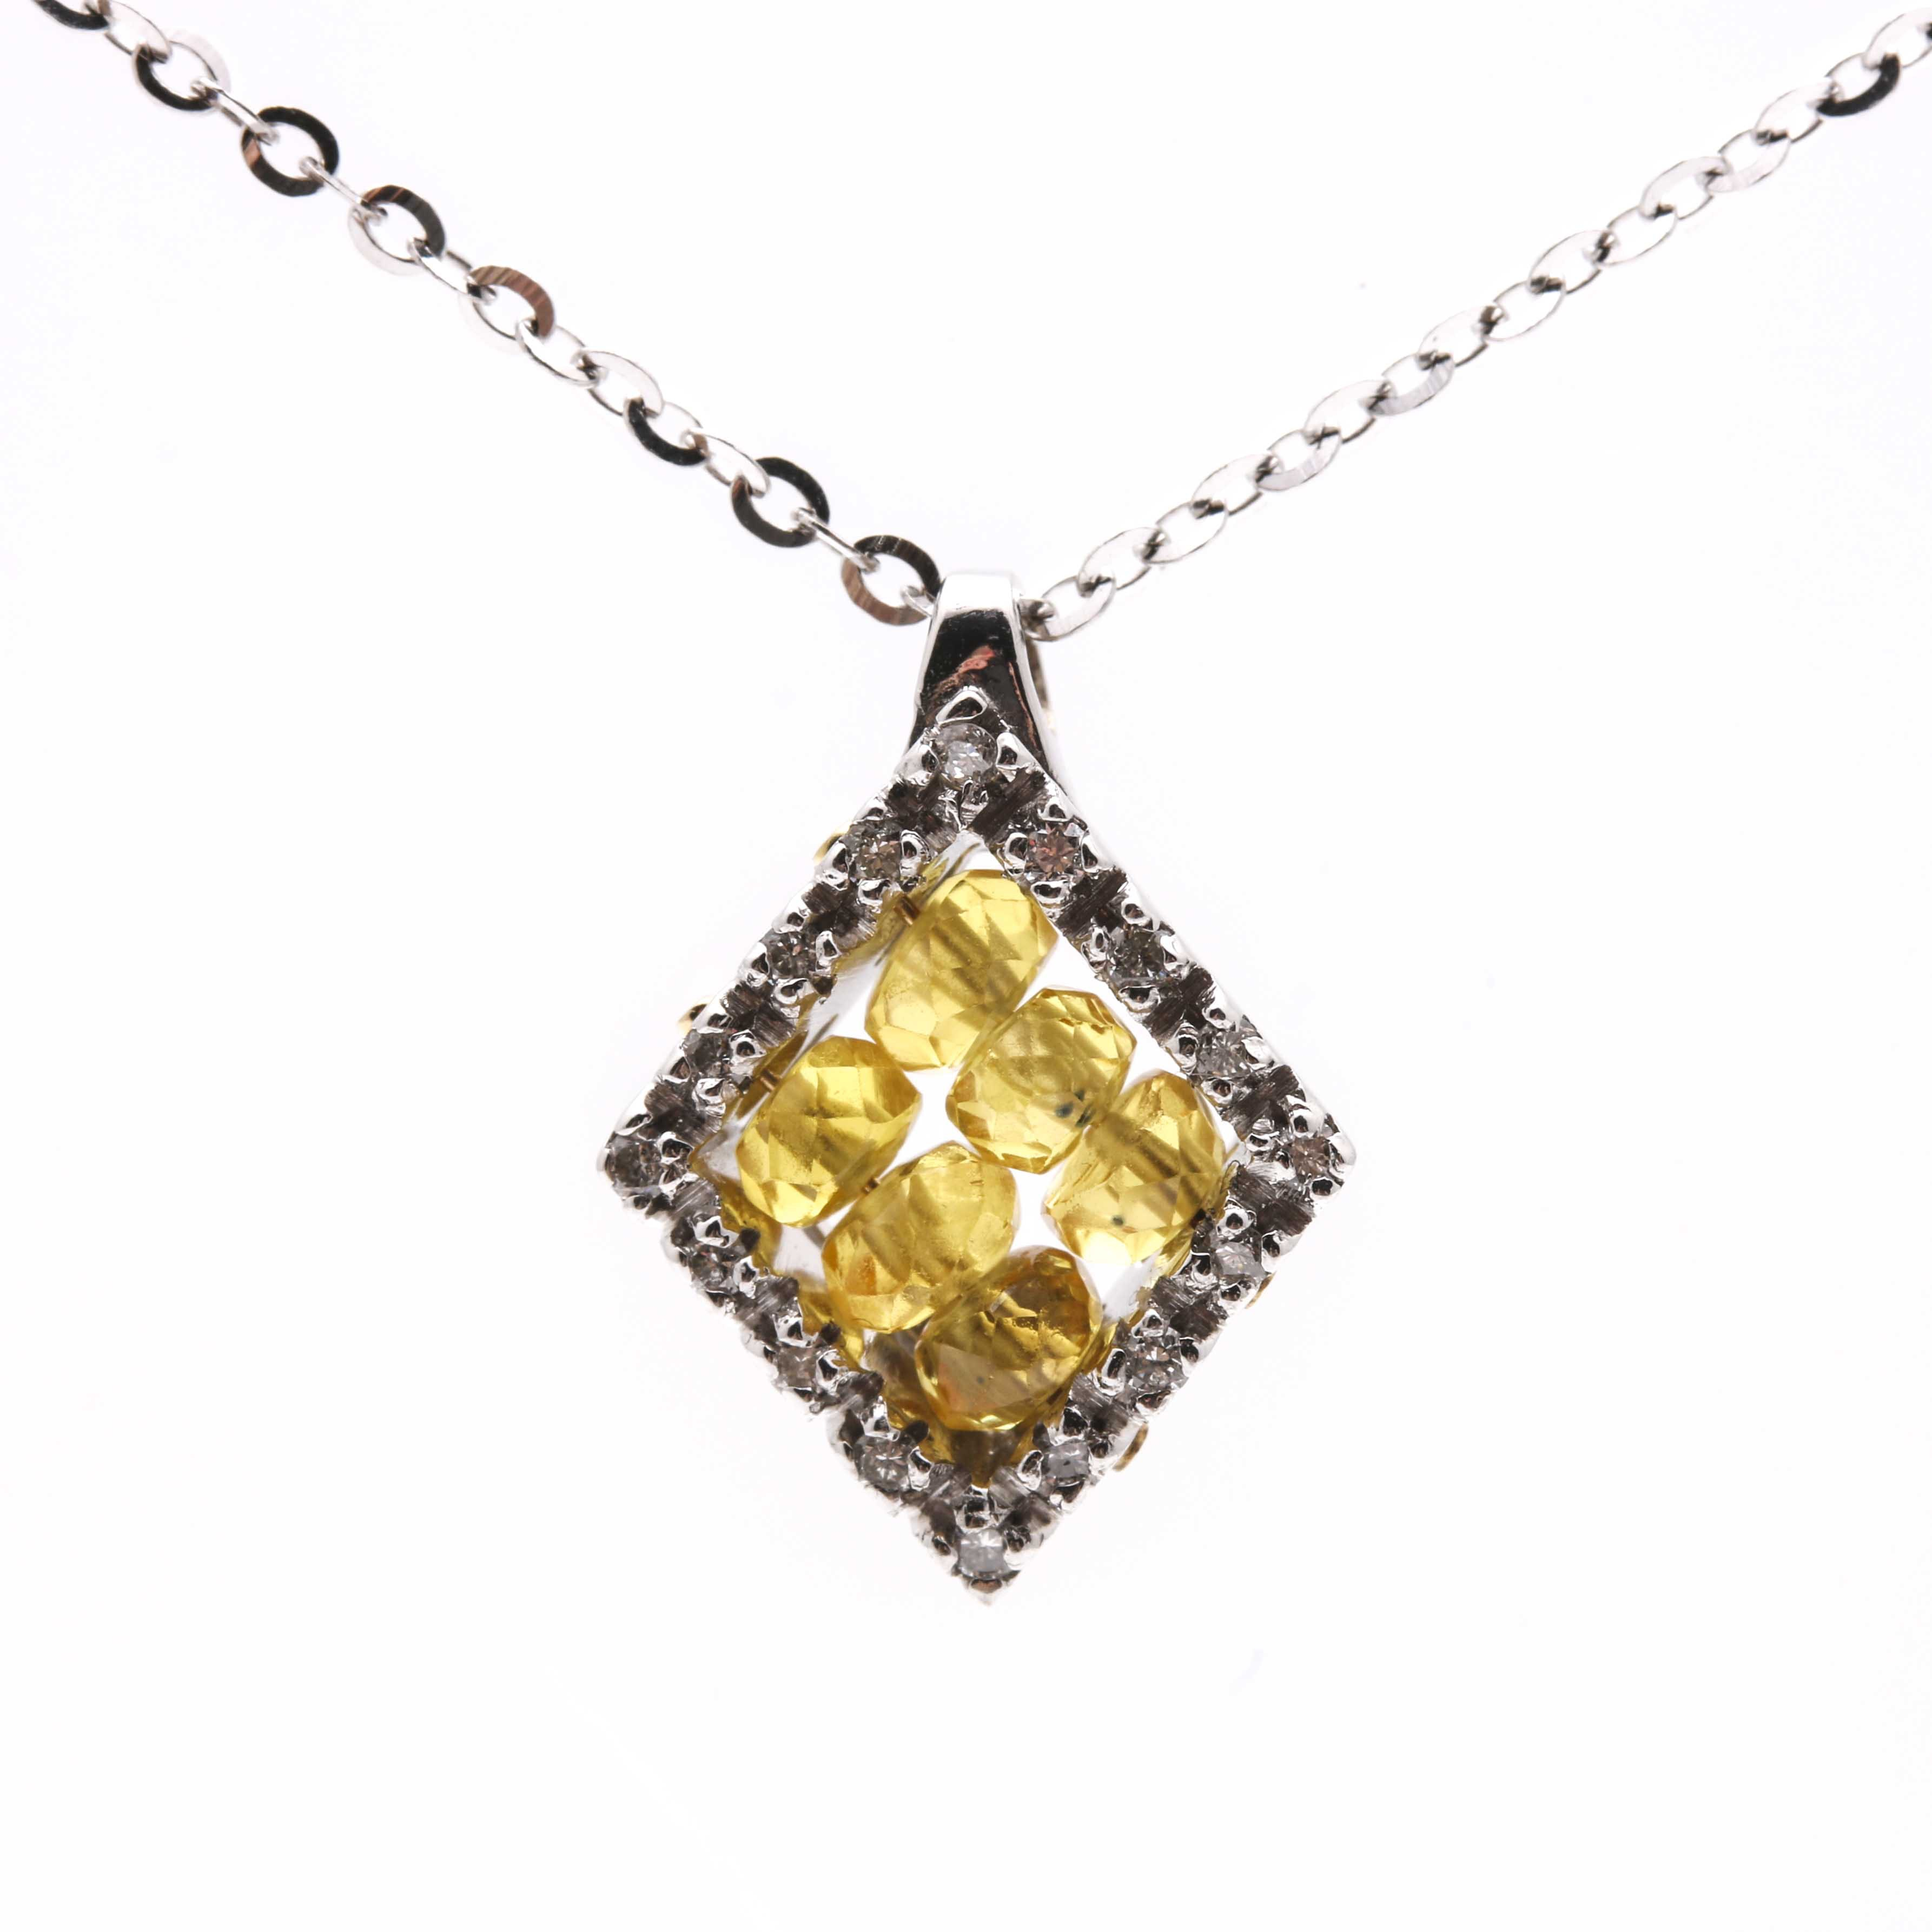 18K White Gold Necklace With Yellow Sapphire Pendant